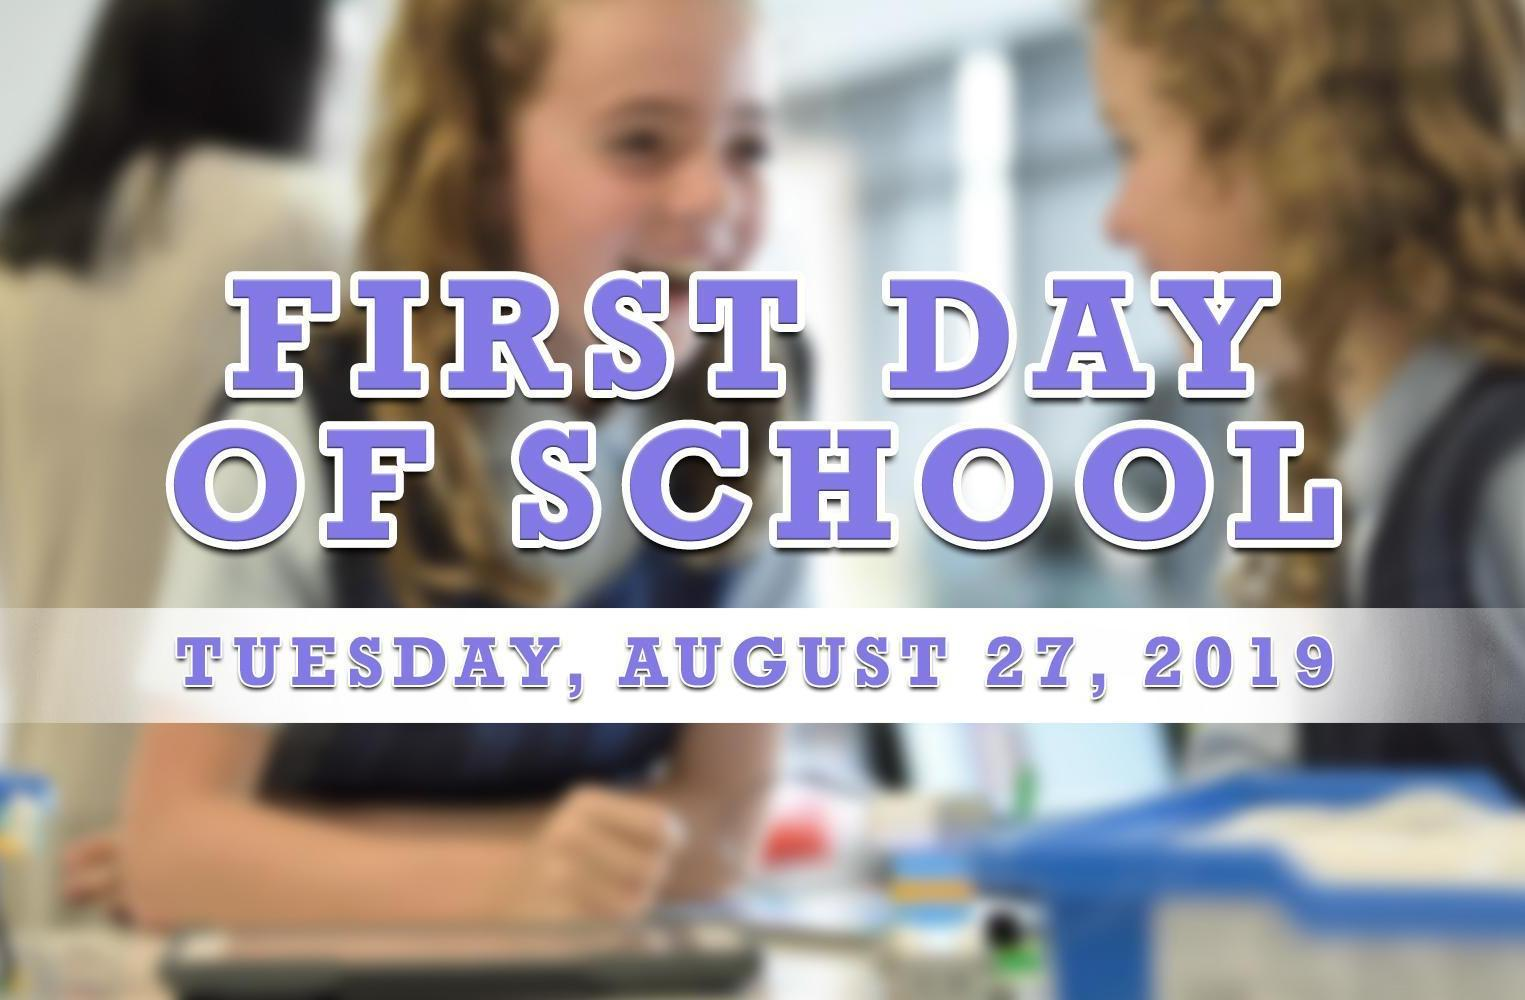 First Day of School at Morse Elementary